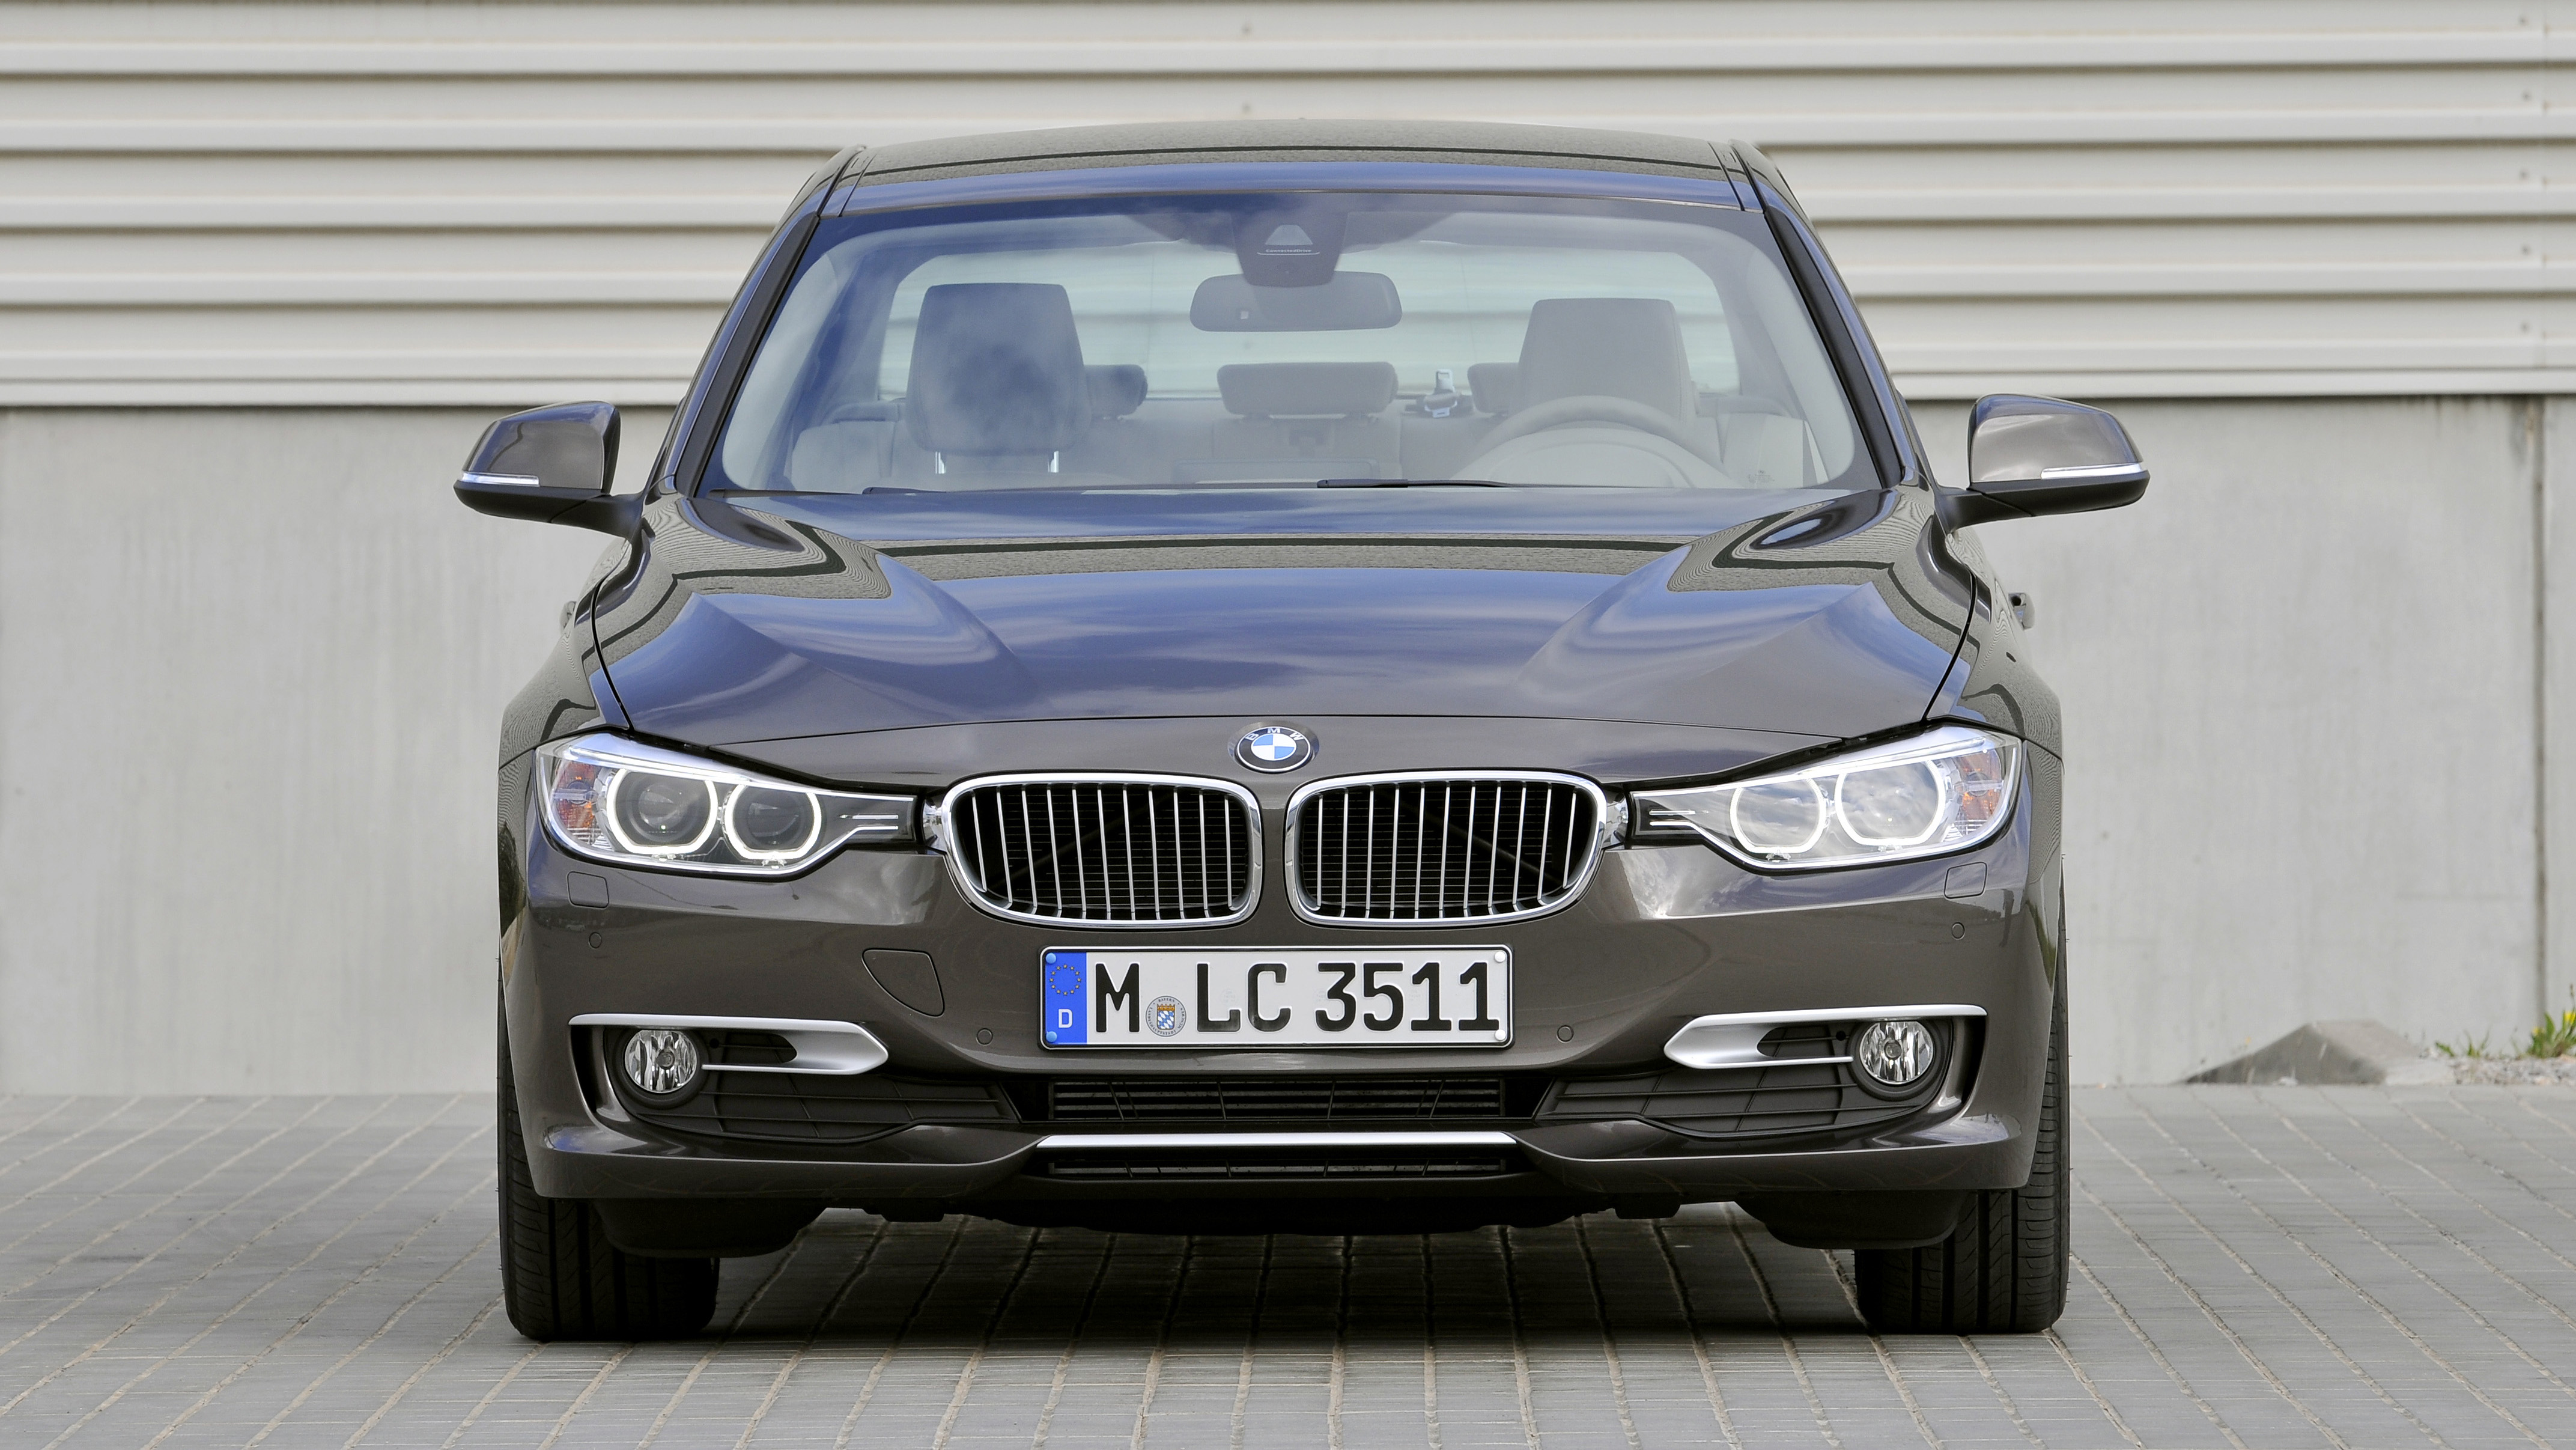 2012 BMW 3 SERIES SEDAN TO PREMIERE AT THE NORTH AMERICAN INTERNATIONAL AUTO SHOW IN DETROIT ON JANUARY 9th<br /> &nbsp;